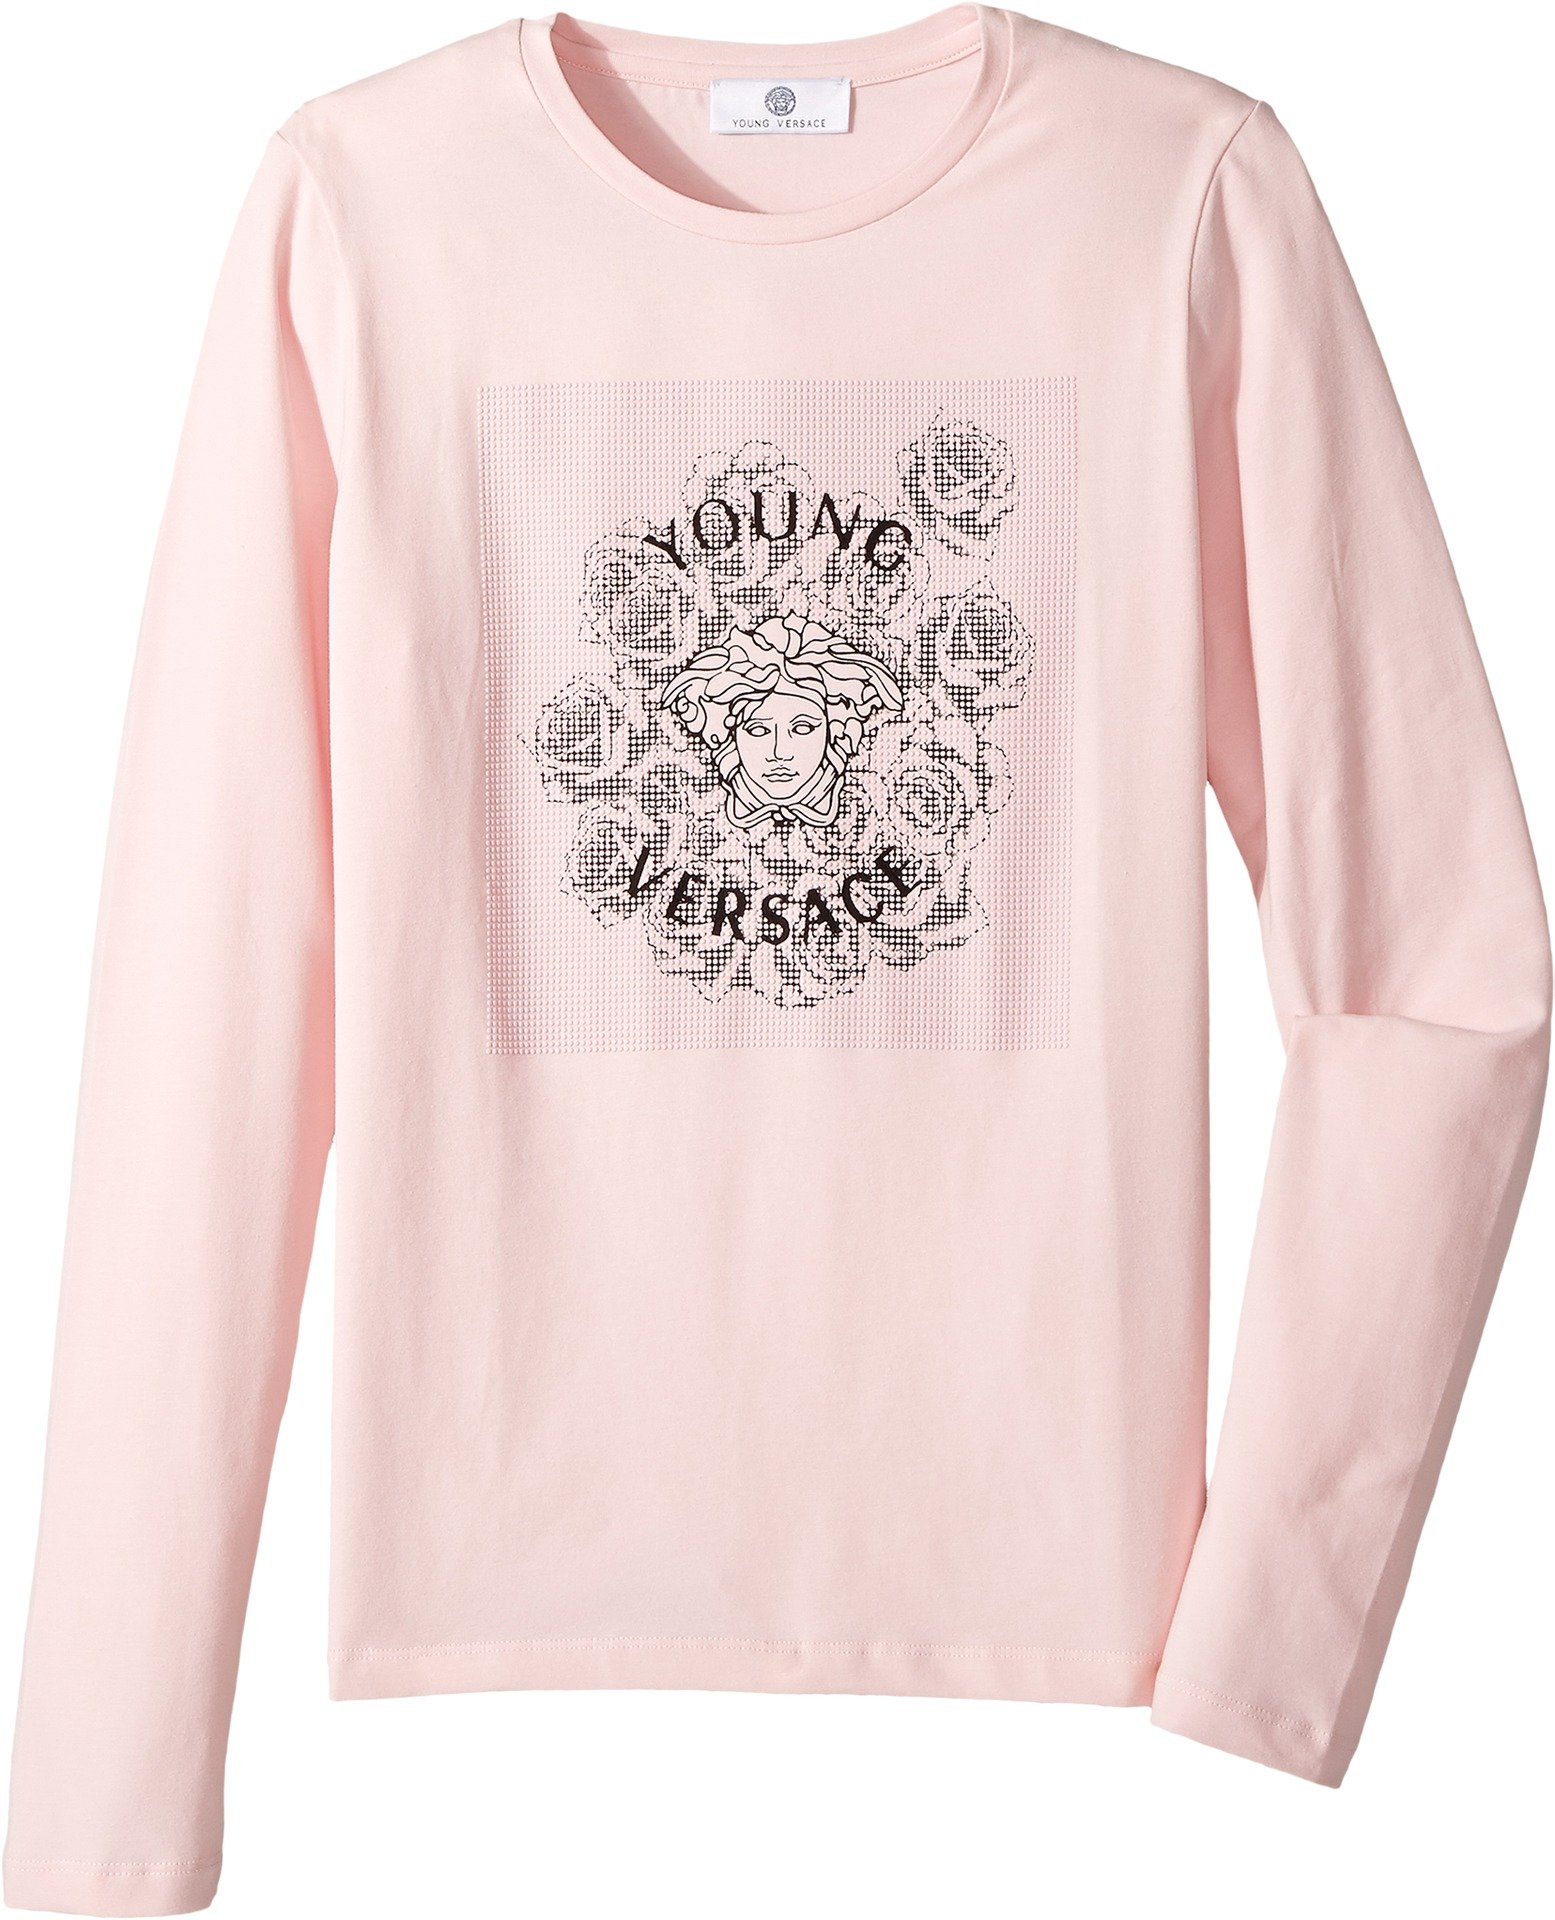 Versace Kids Girl's Long Sleeve T-Shirt w/ Medusa Rose Design On Front (Big Kids) Pink 11-12 Big Kids by Versace (Image #1)